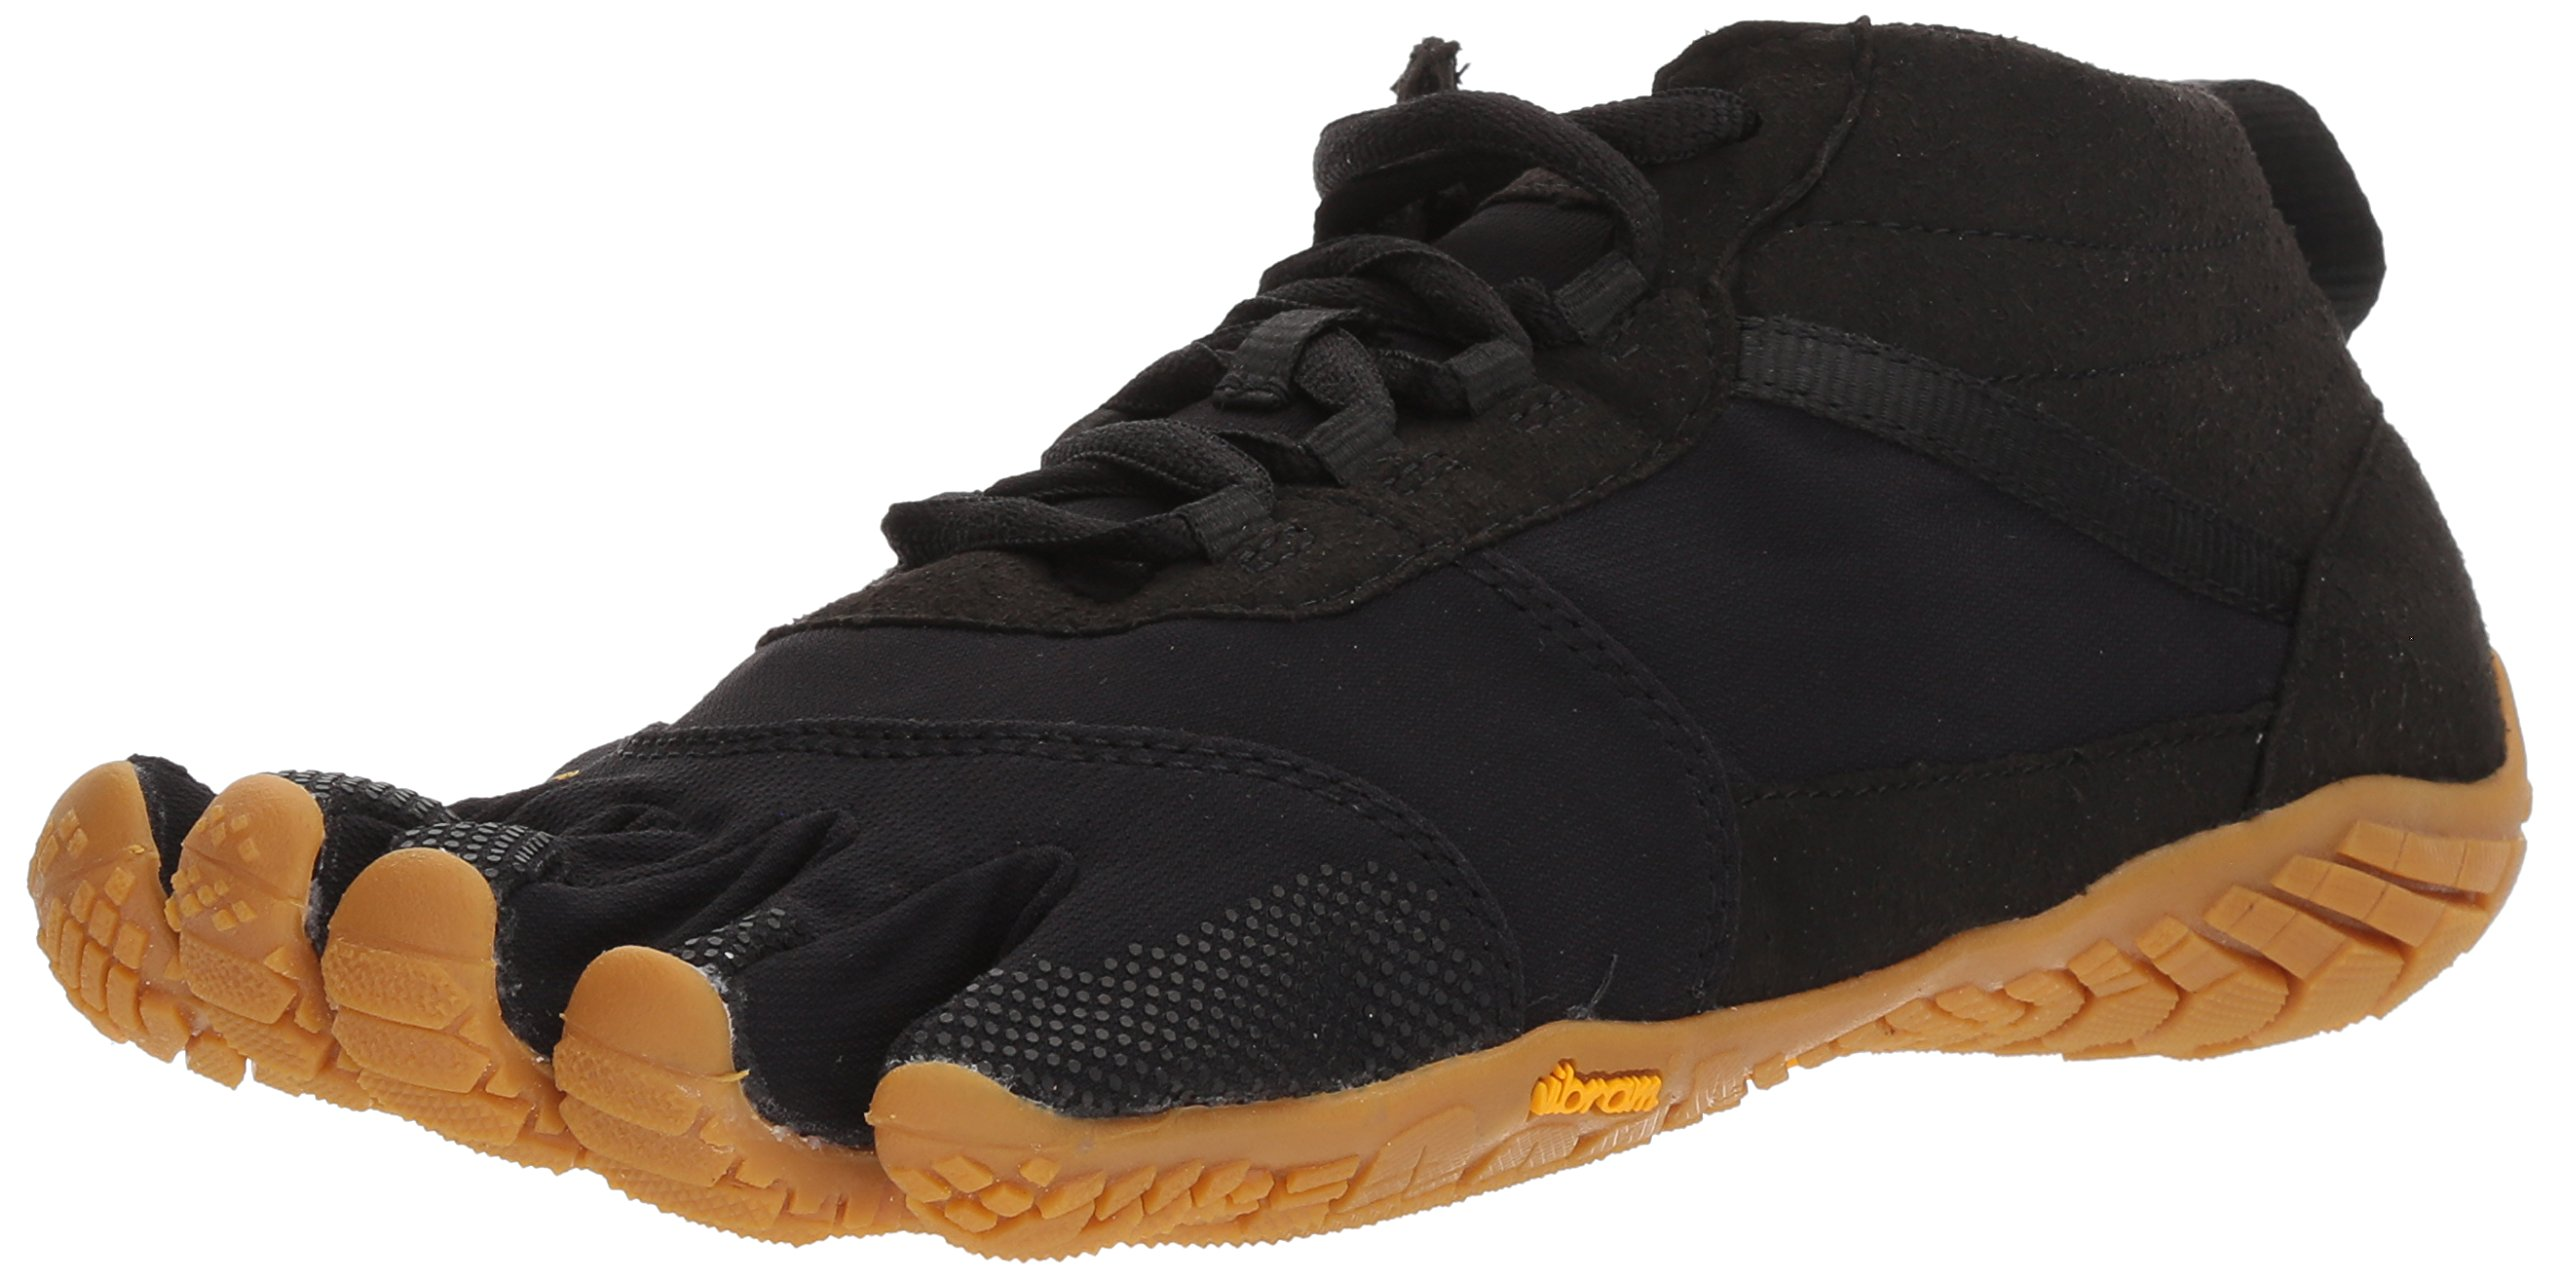 Vibram Men's V-Trek Hiking Shoe, Black/Gum, 41 EU/8.5-9.0 M US D EU (41 EU/8.5-9.0 US US)